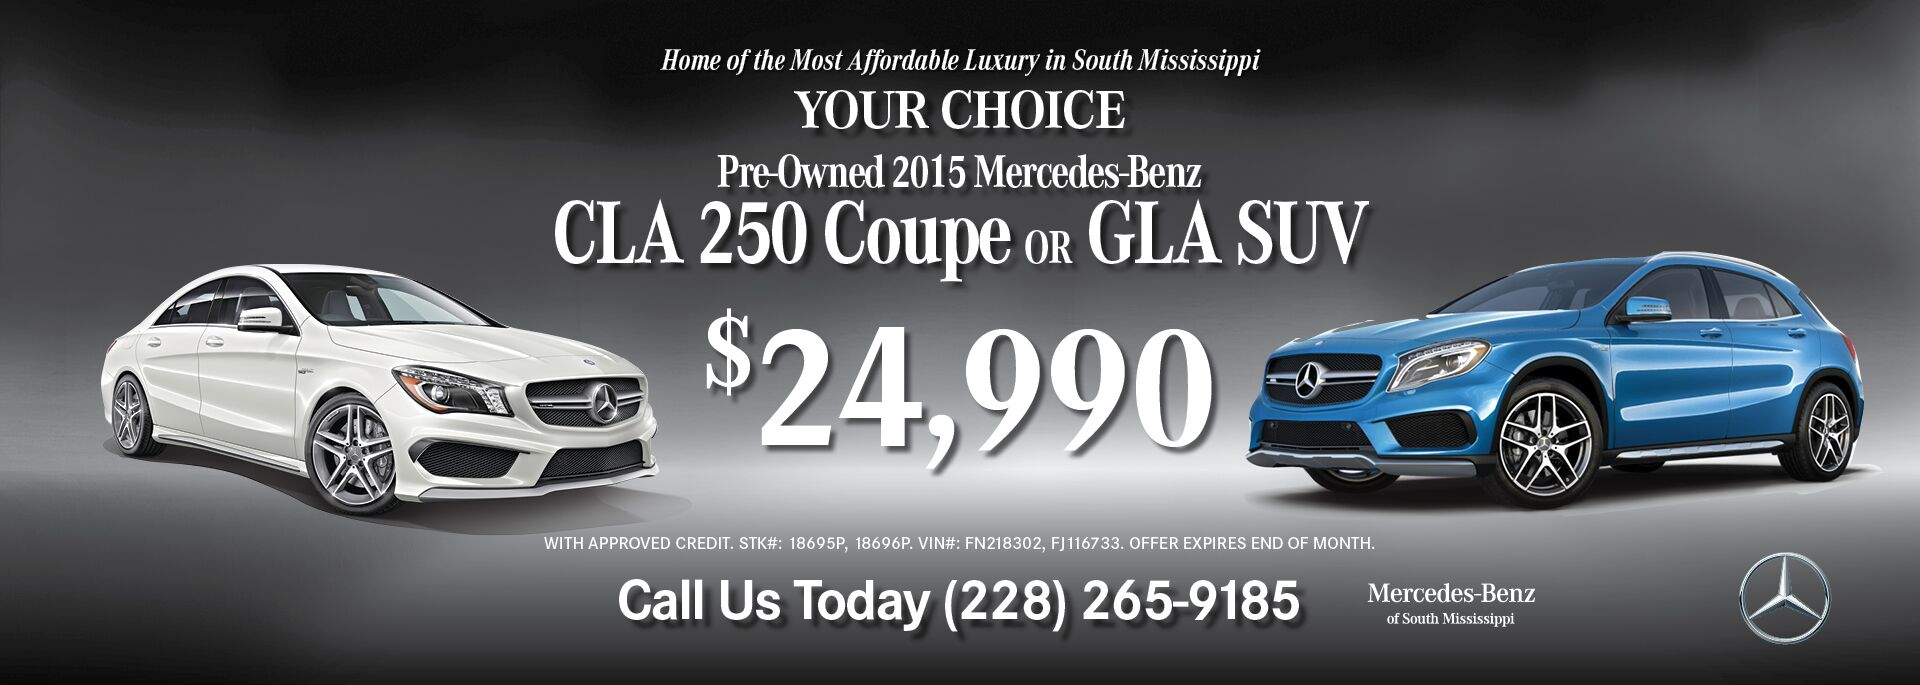 CLA/GLA 24990 special July18-2